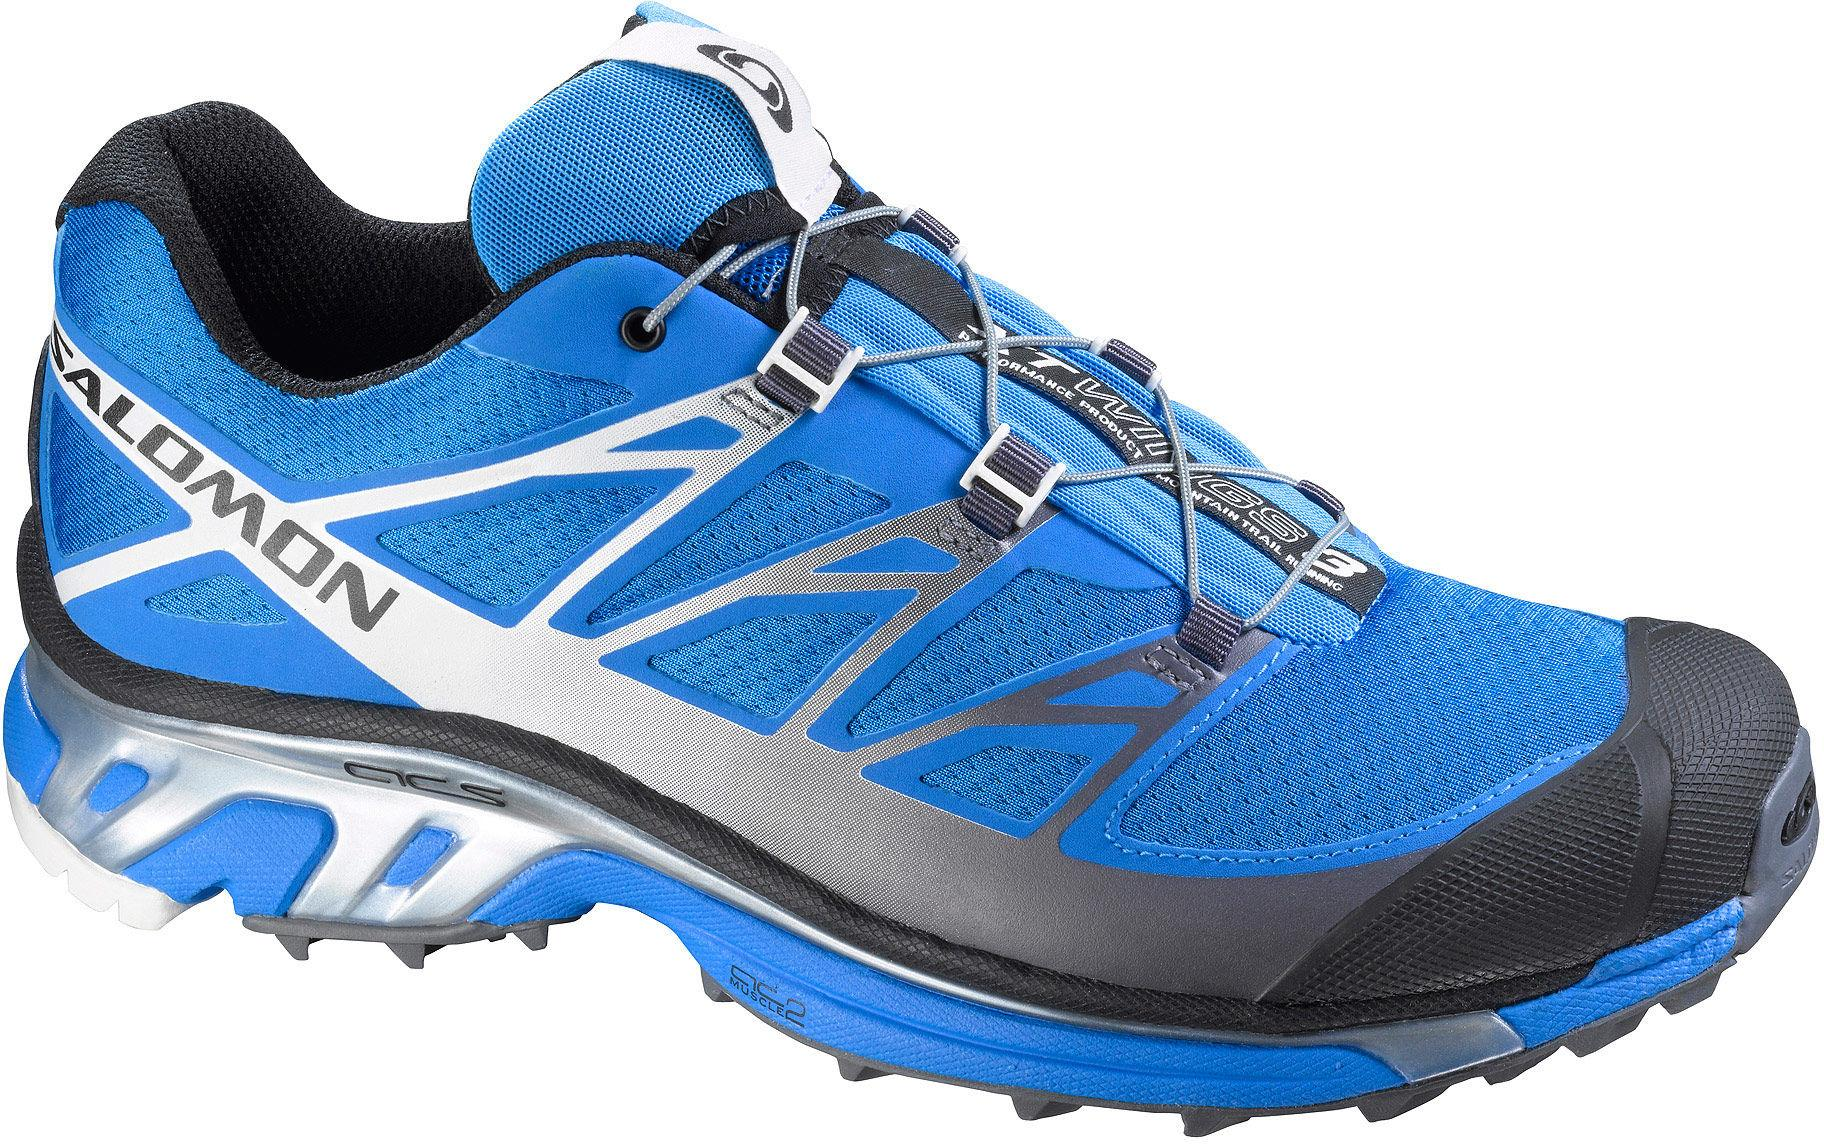 Foto Zapatillas Salomon - XT Wings 3 - OI13 - UK 7 Cloud/ON/GR